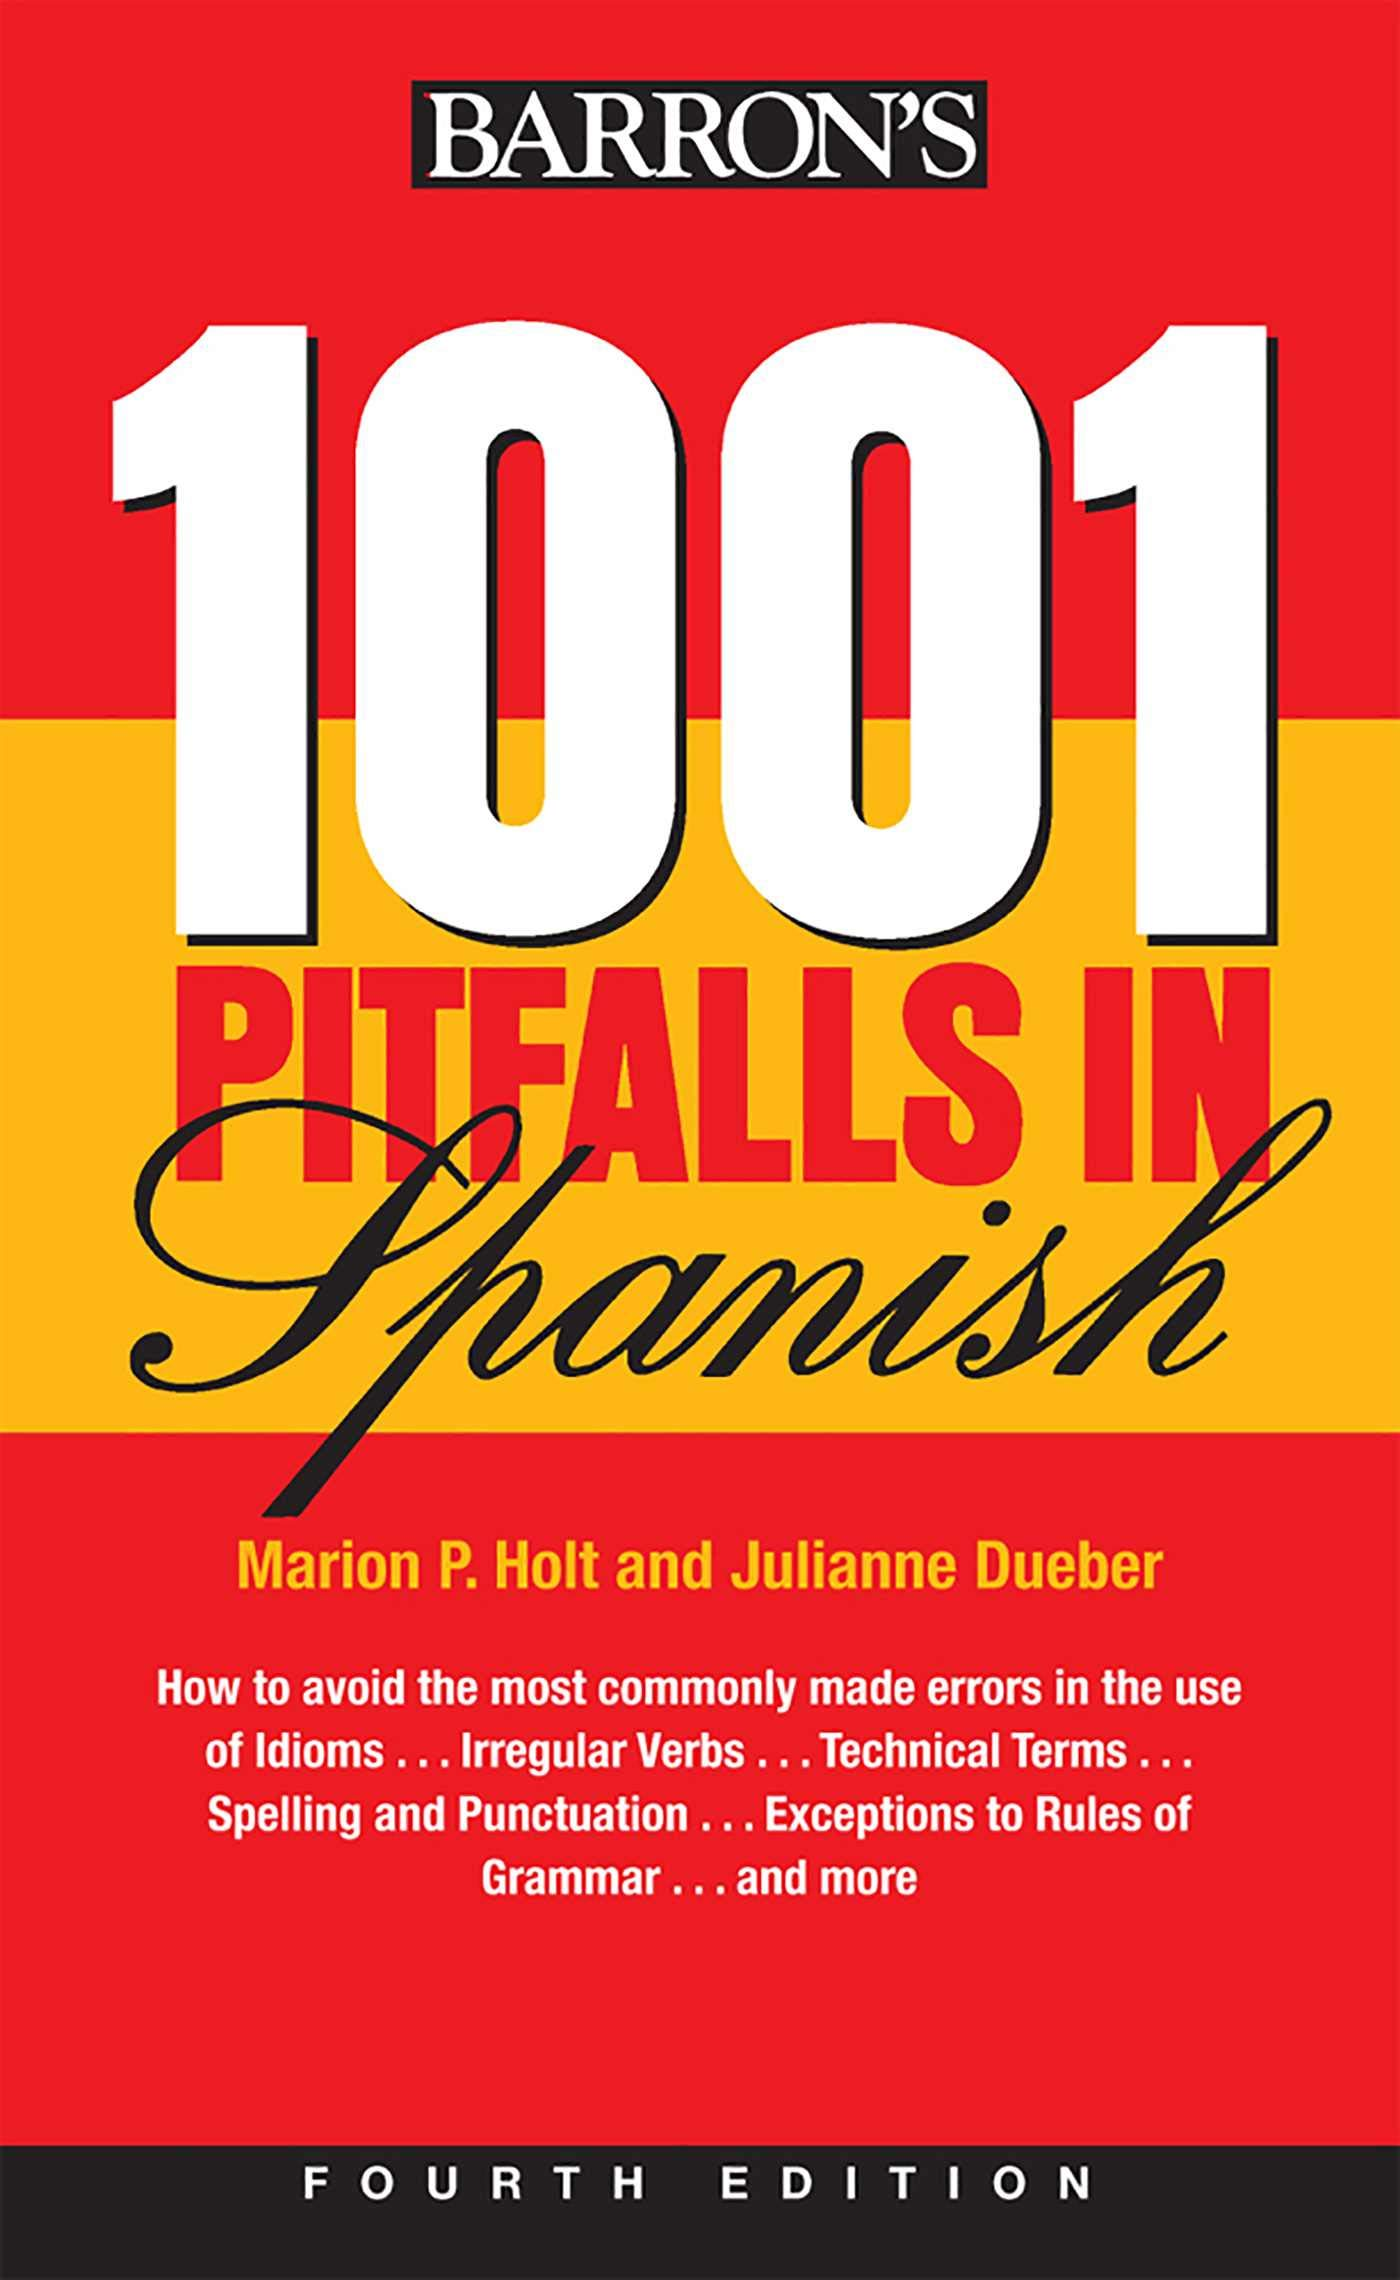 20 Pitfalls In Spanish Barron's Foreign Language Guides  Holt ...